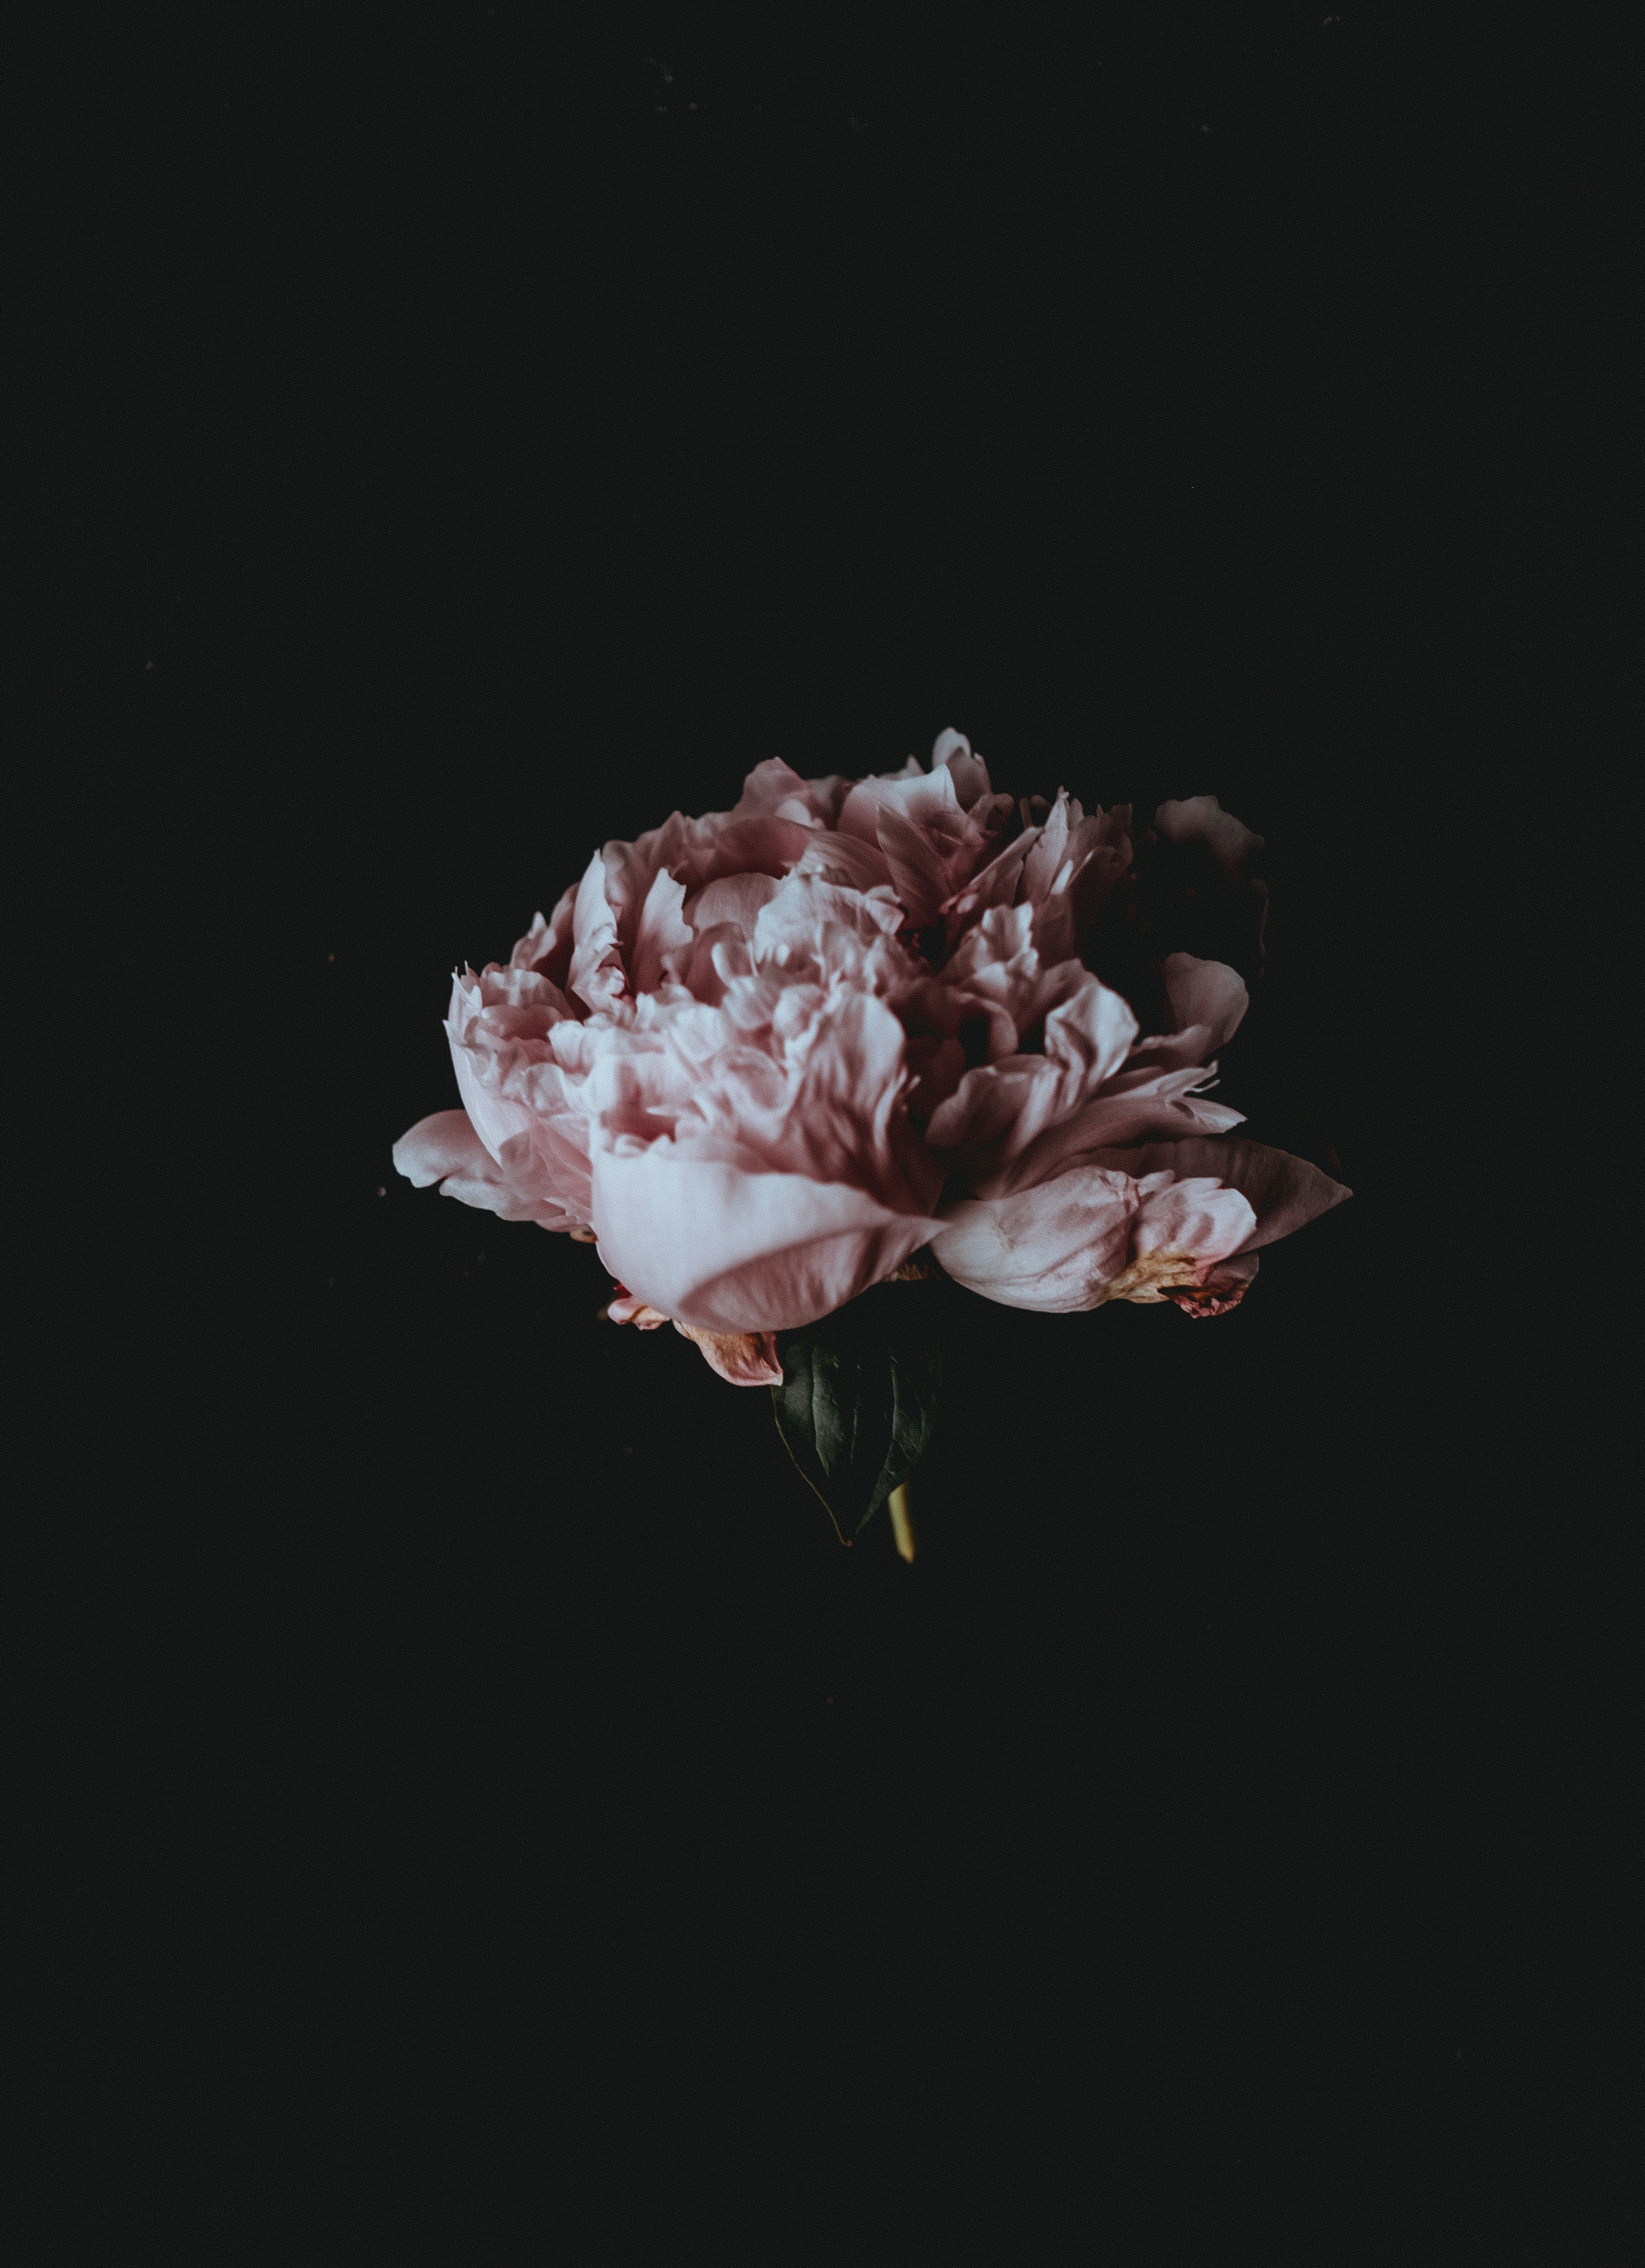 A pale pink peony flower against a black background